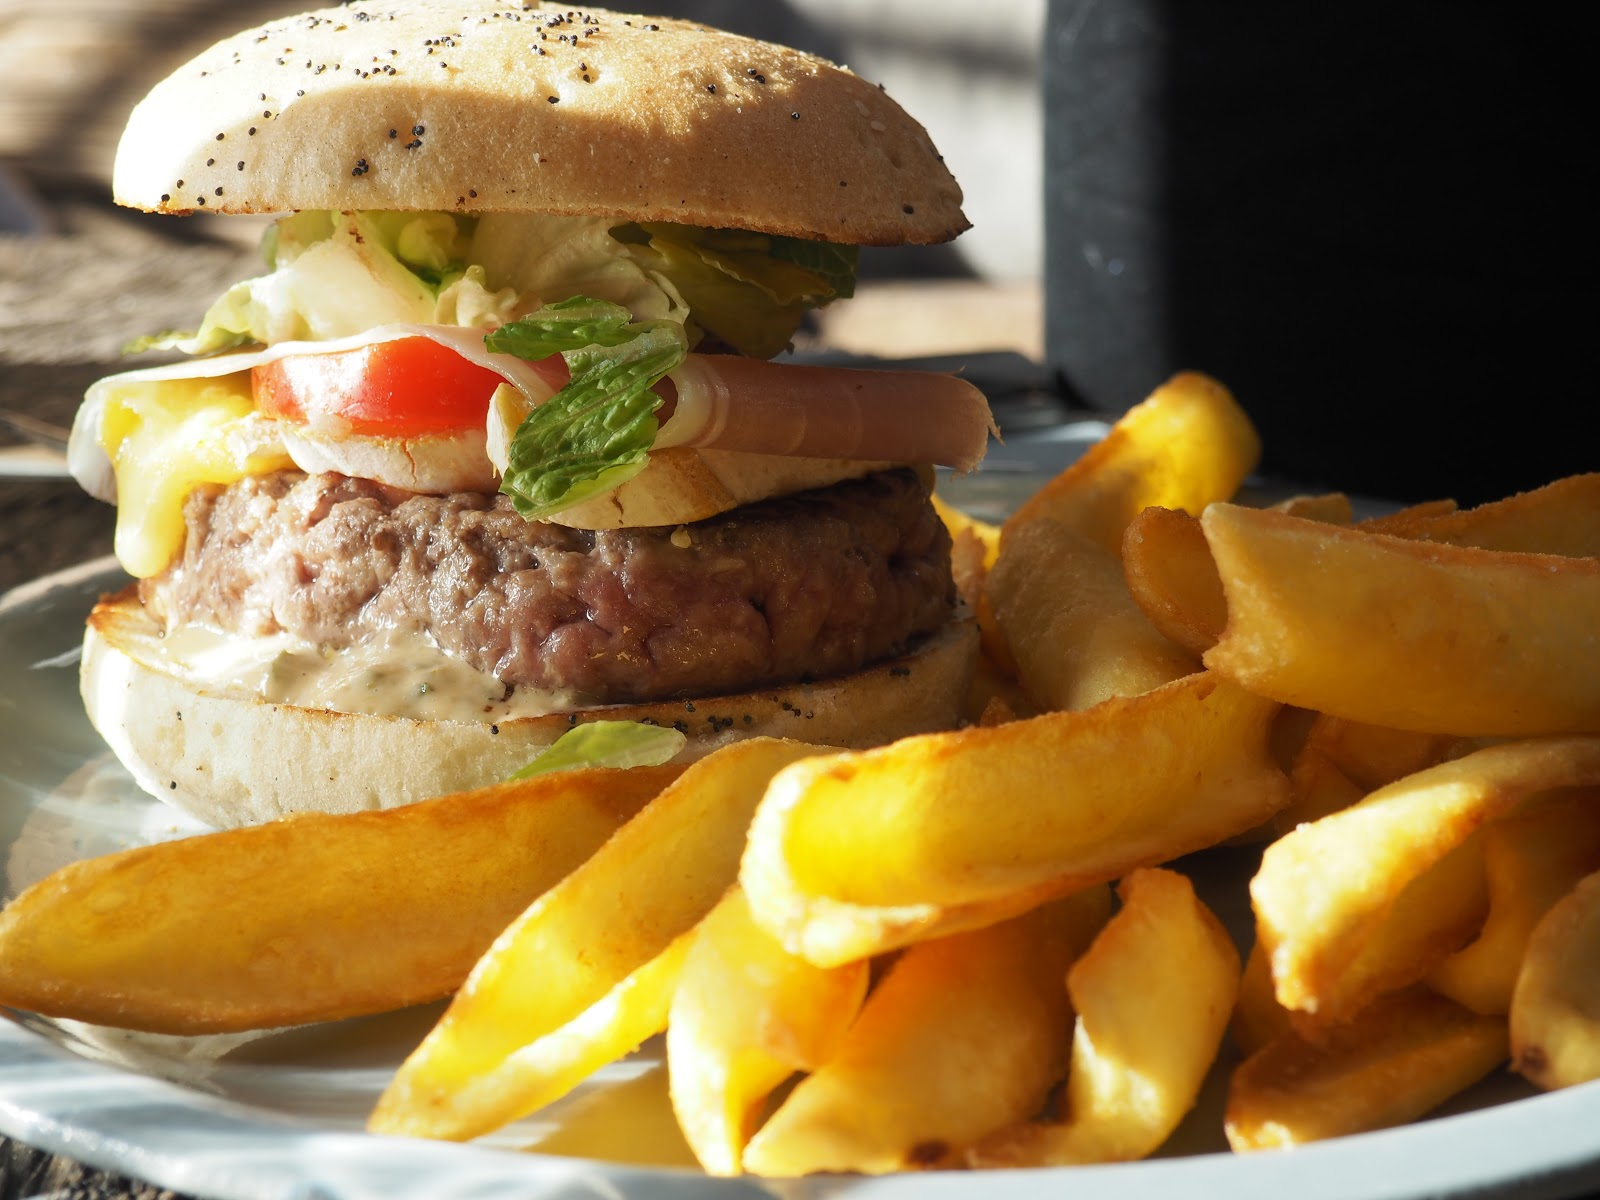 Burger and chips in La Baraque in Val d'isere, France